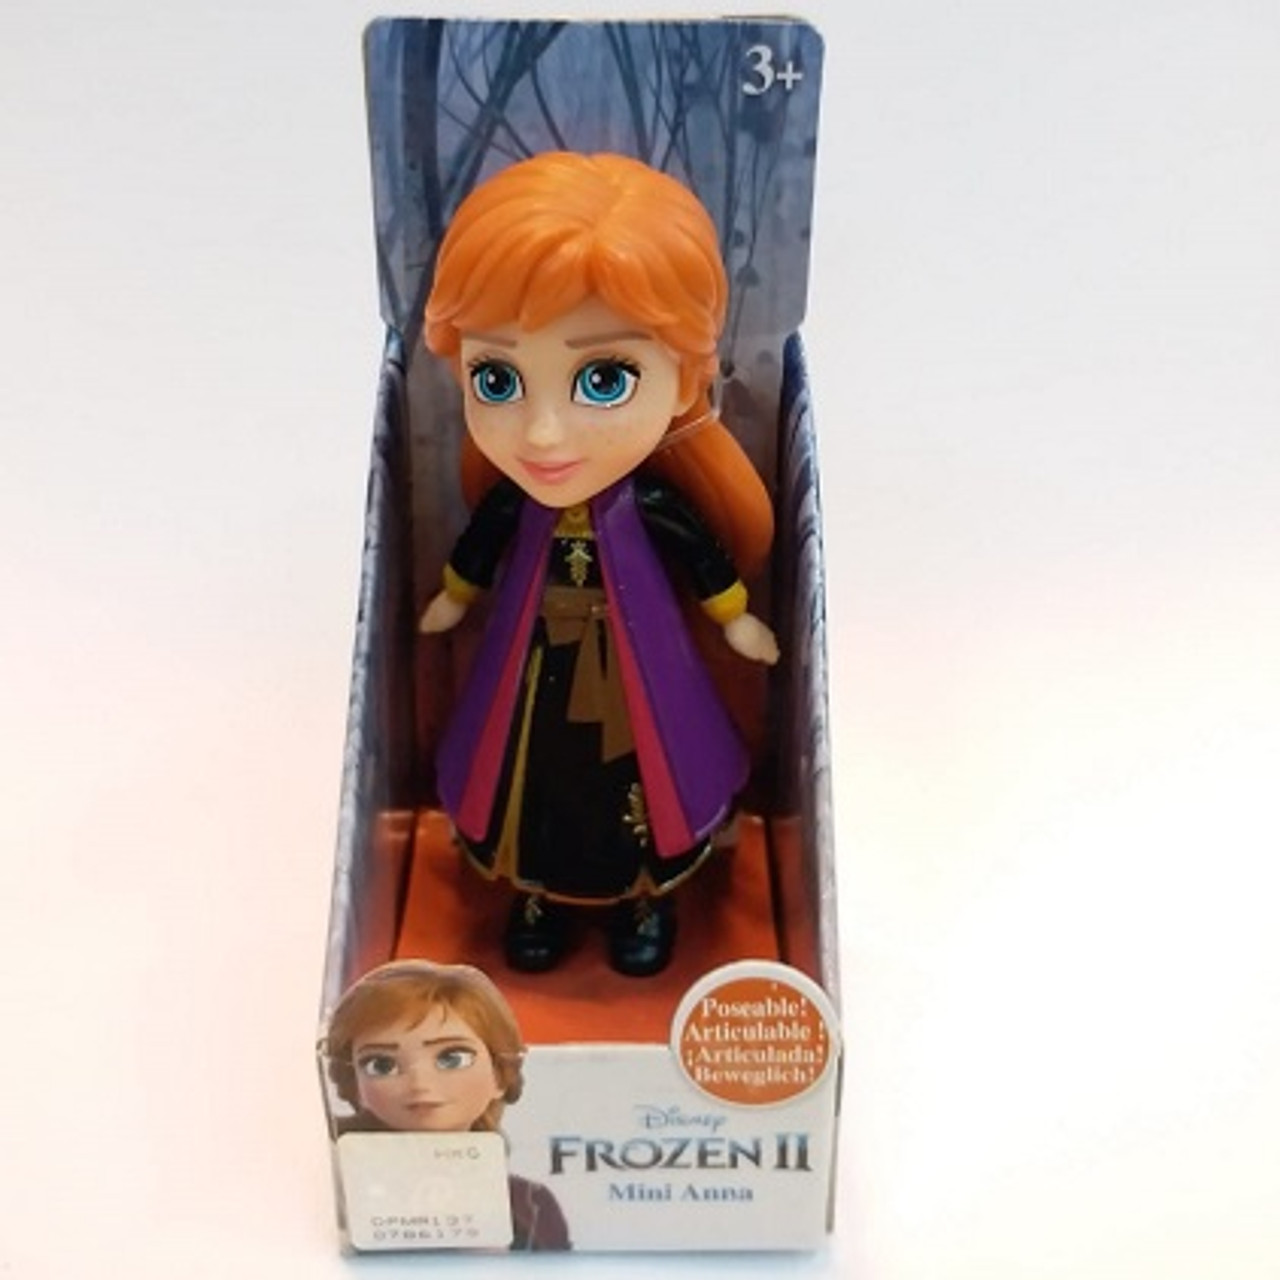 DISNEY FROZEN II MINI ANNA W1